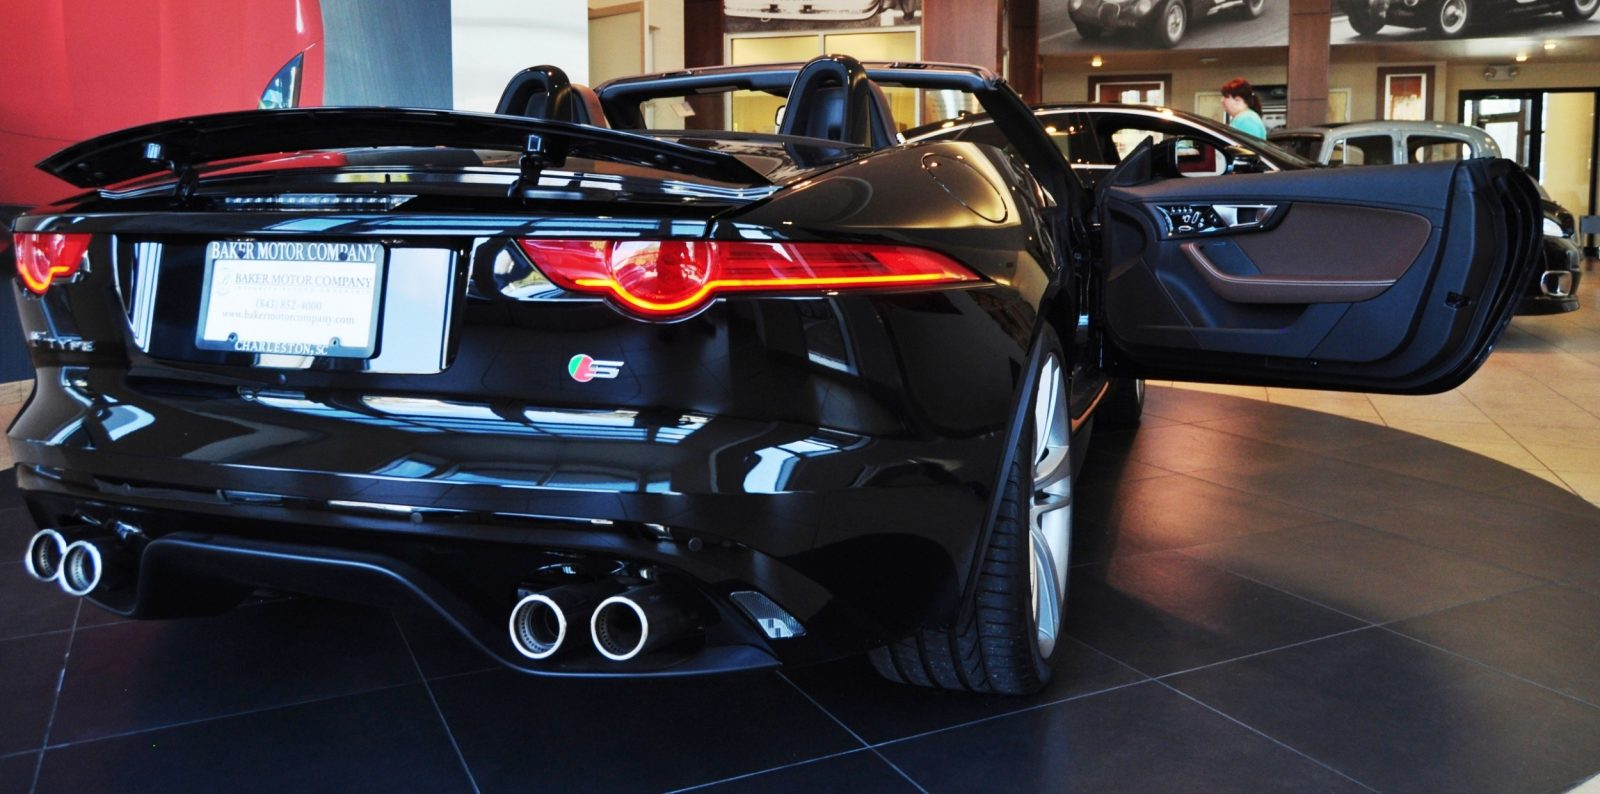 2014 Jaguar F-type S Cabrio - LED Lighting Demo and 60 High-Res Photos30